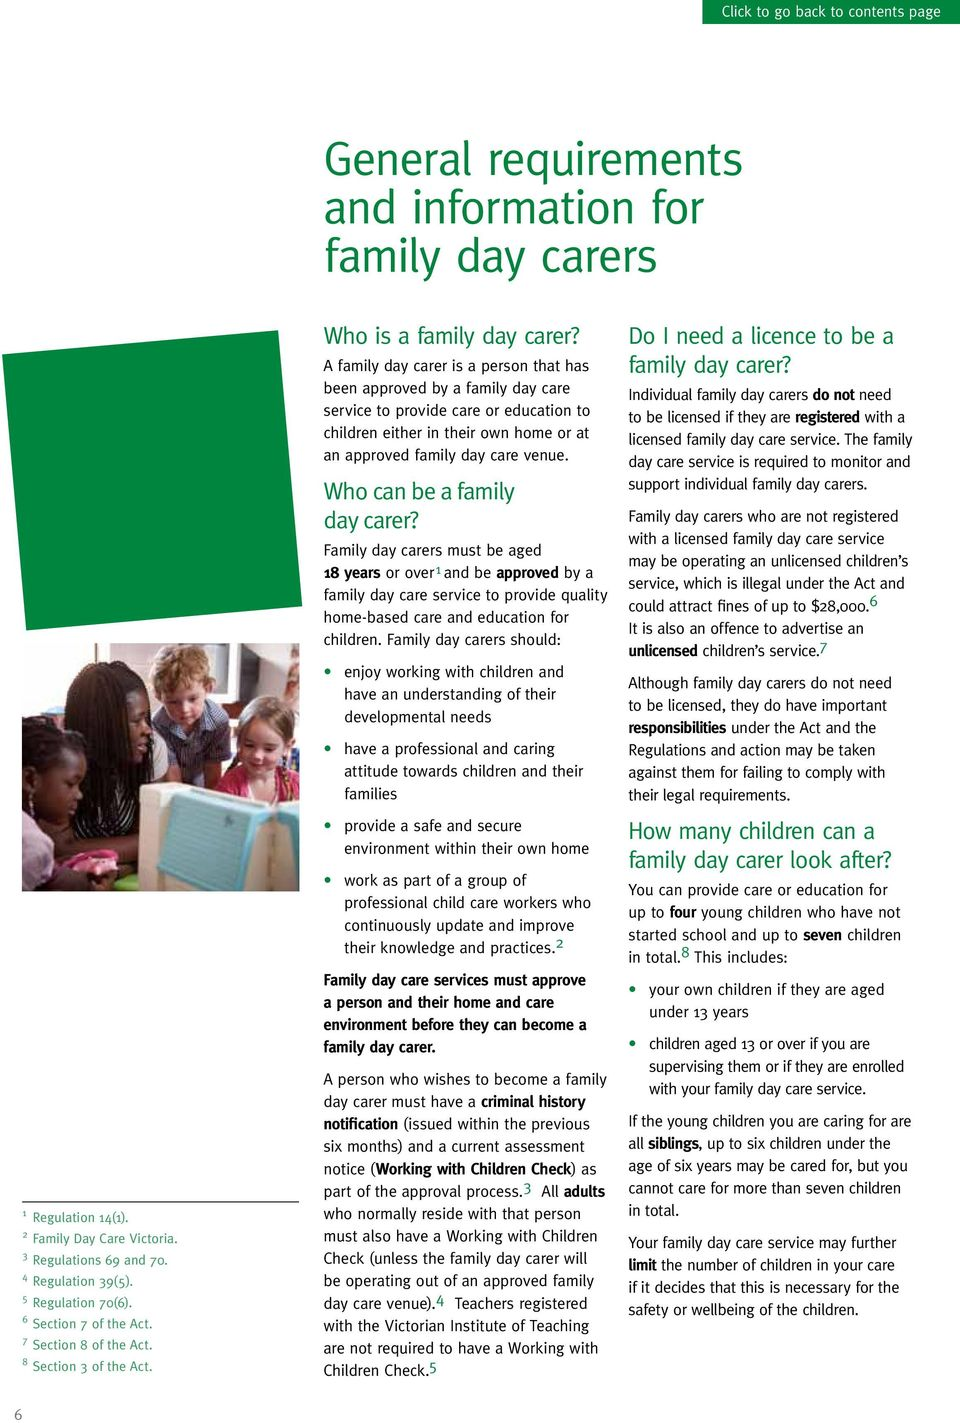 A family day carer is a person that has been approved by a family day care service to provide care or education to children either in their own home or at an approved family day care venue.